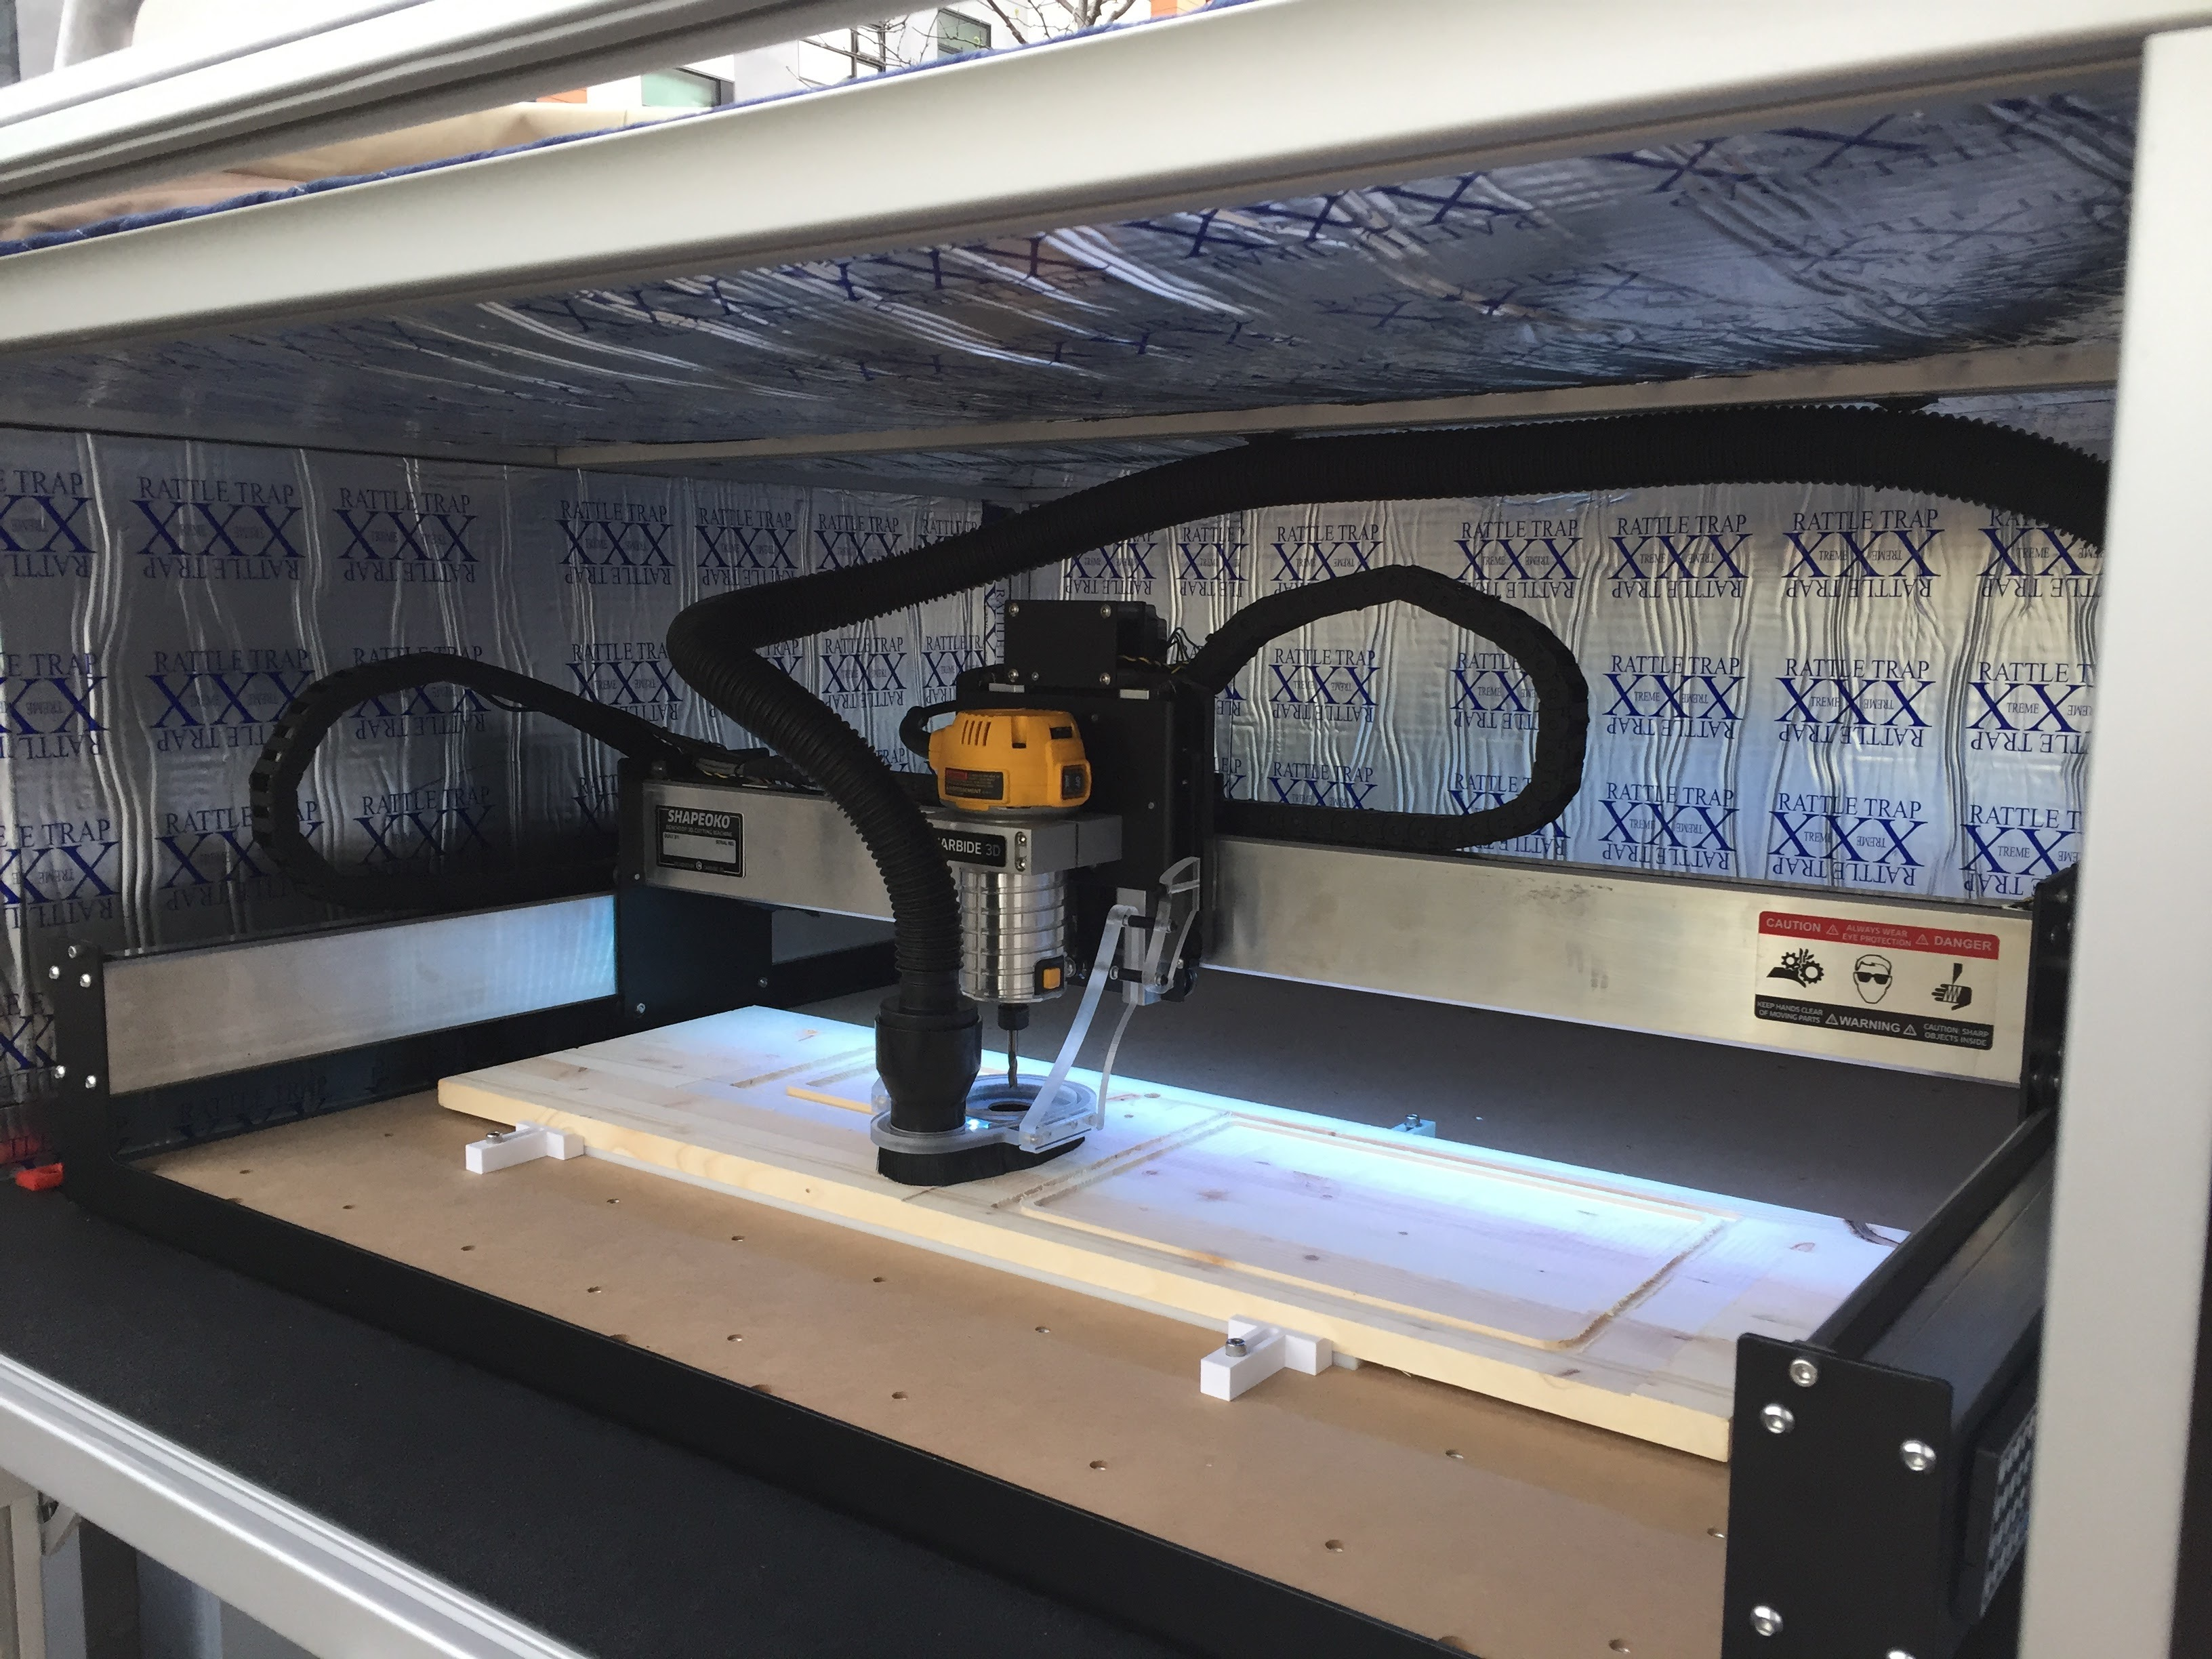 For Sale: Shapeoko XXL - UPDATE - Will be keeping it